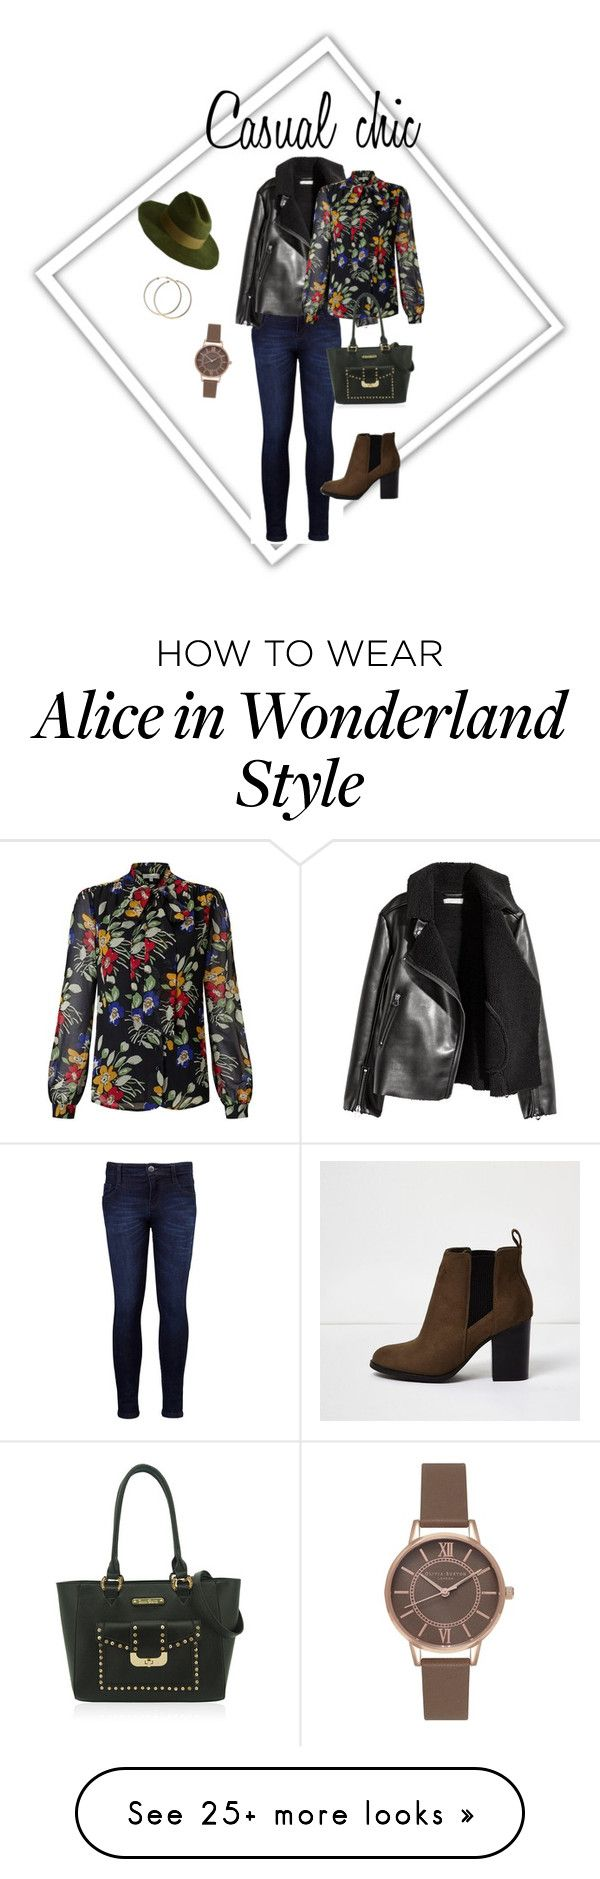 """""""Casual chic"""" by kadie-bespoke on Polyvore featuring Levi's, River Island, Somerset by Alice Temperley, Brixton and Olivia Burton"""